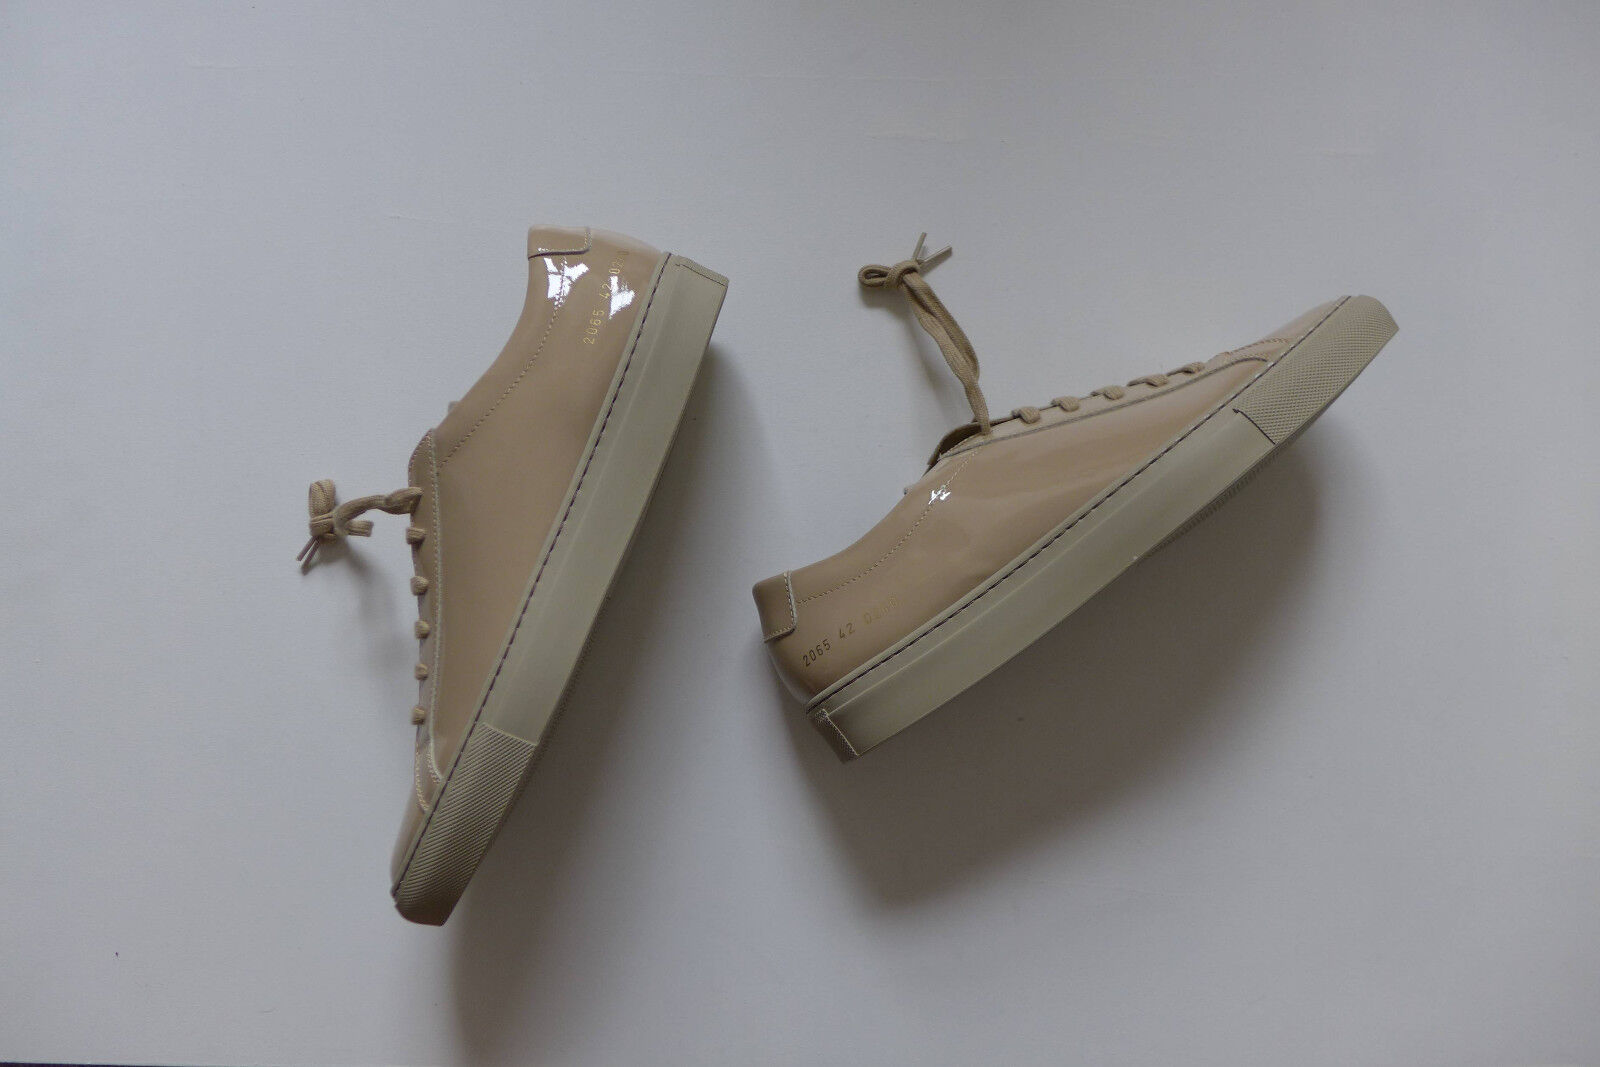 Common Projects Achilles - Trainers in Gloss Taupe, Talla 42 - Achilles BNWB, 330 2b5729